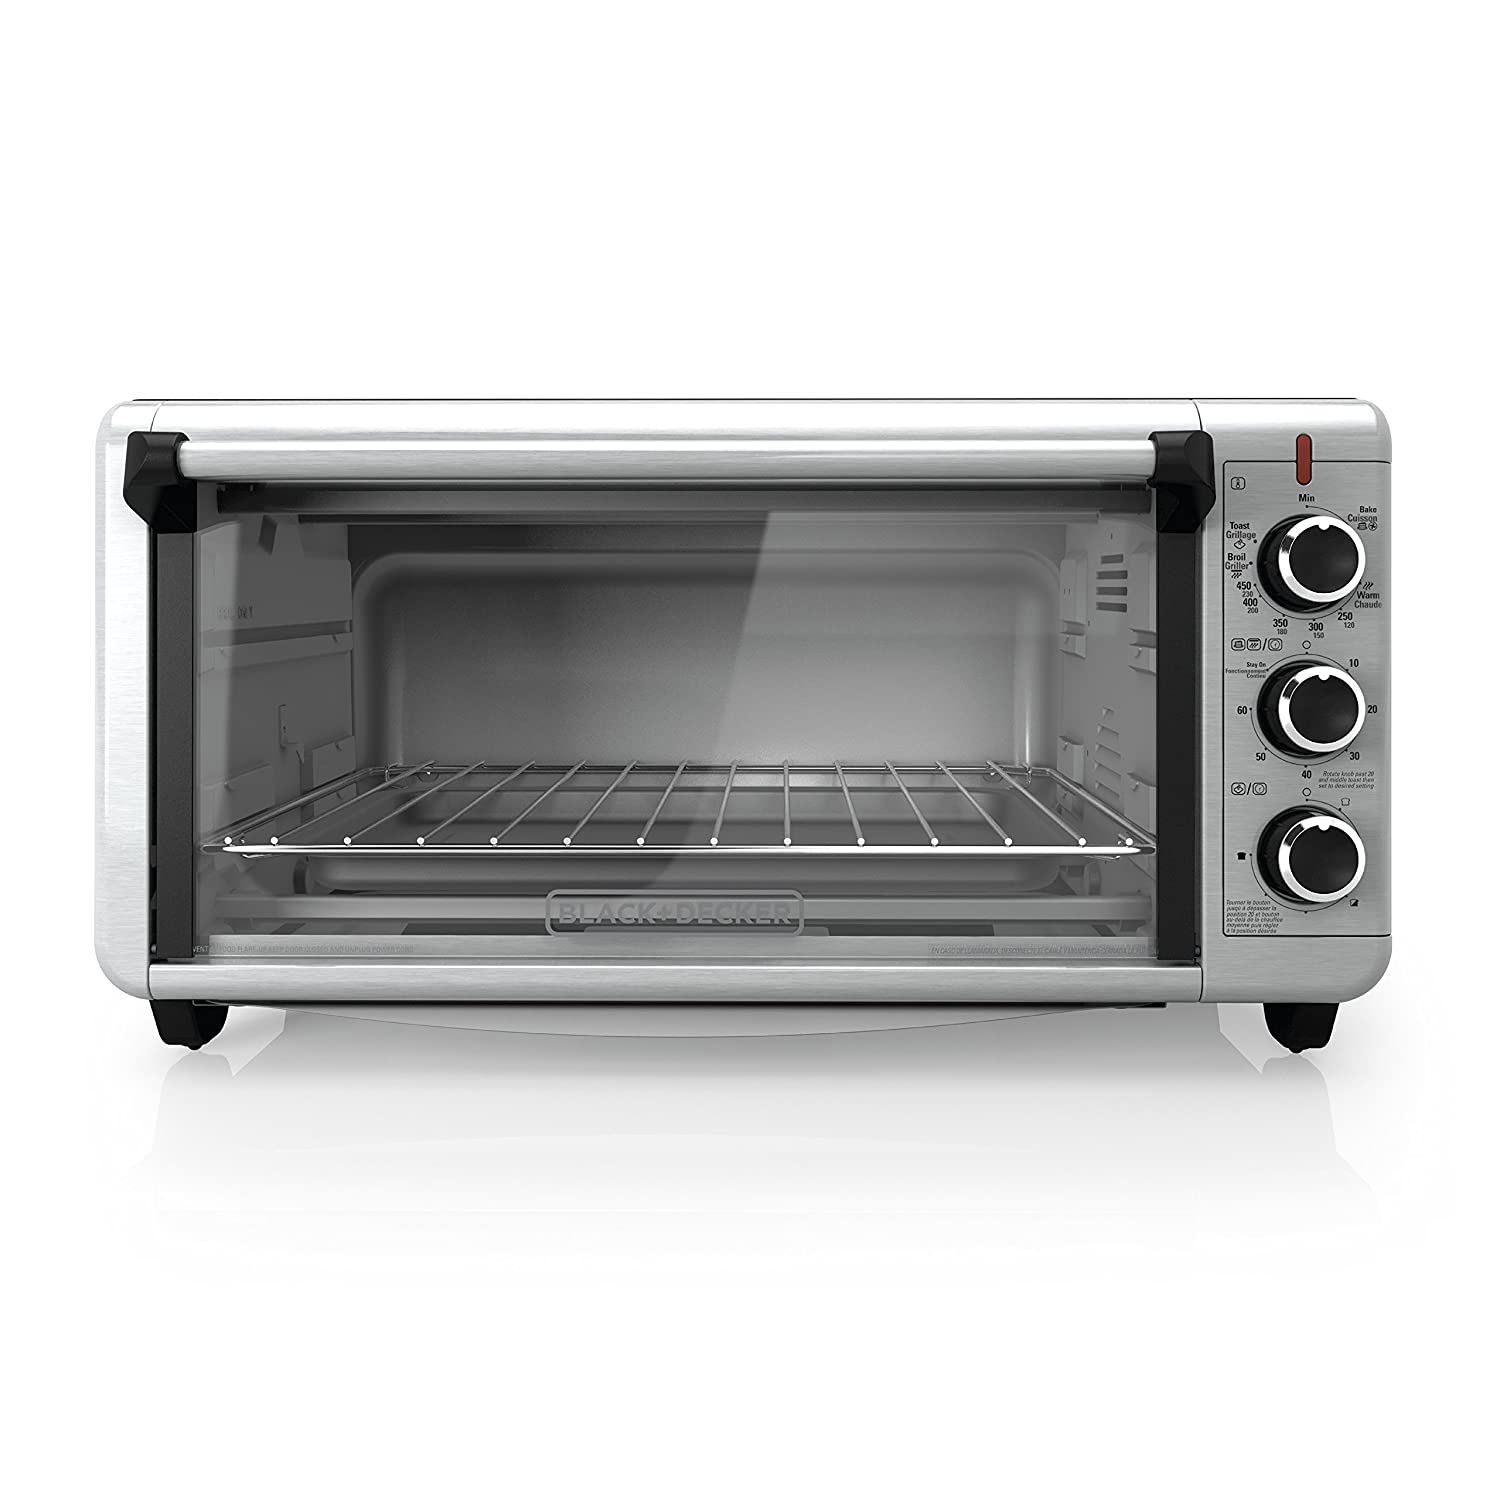 qvc toaster com for product oven sale page pro breville smart